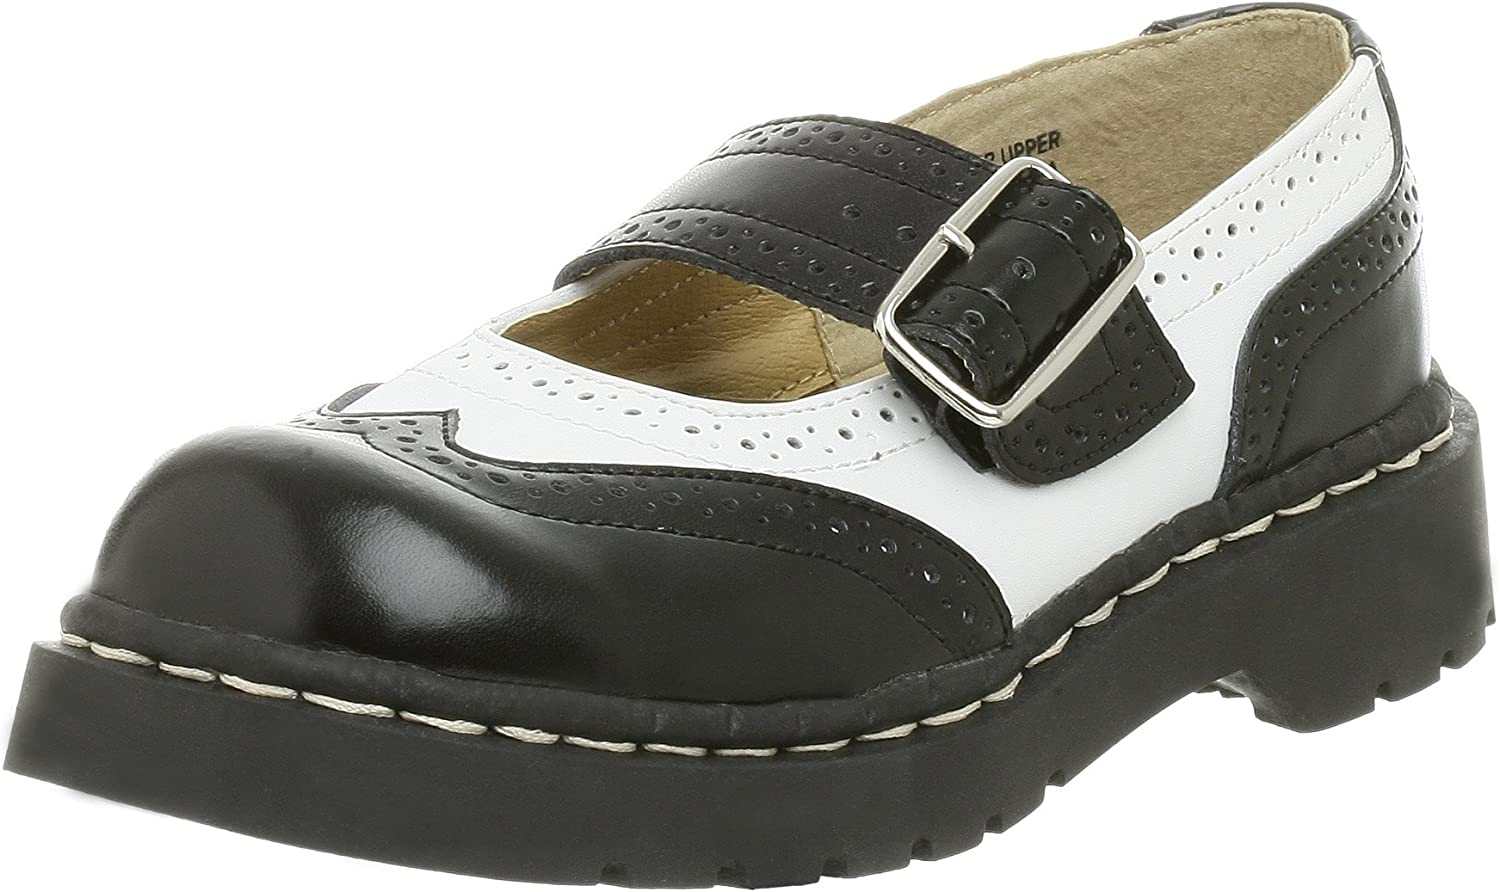 T.U.K Shoes Womens T1035 Mary Janes